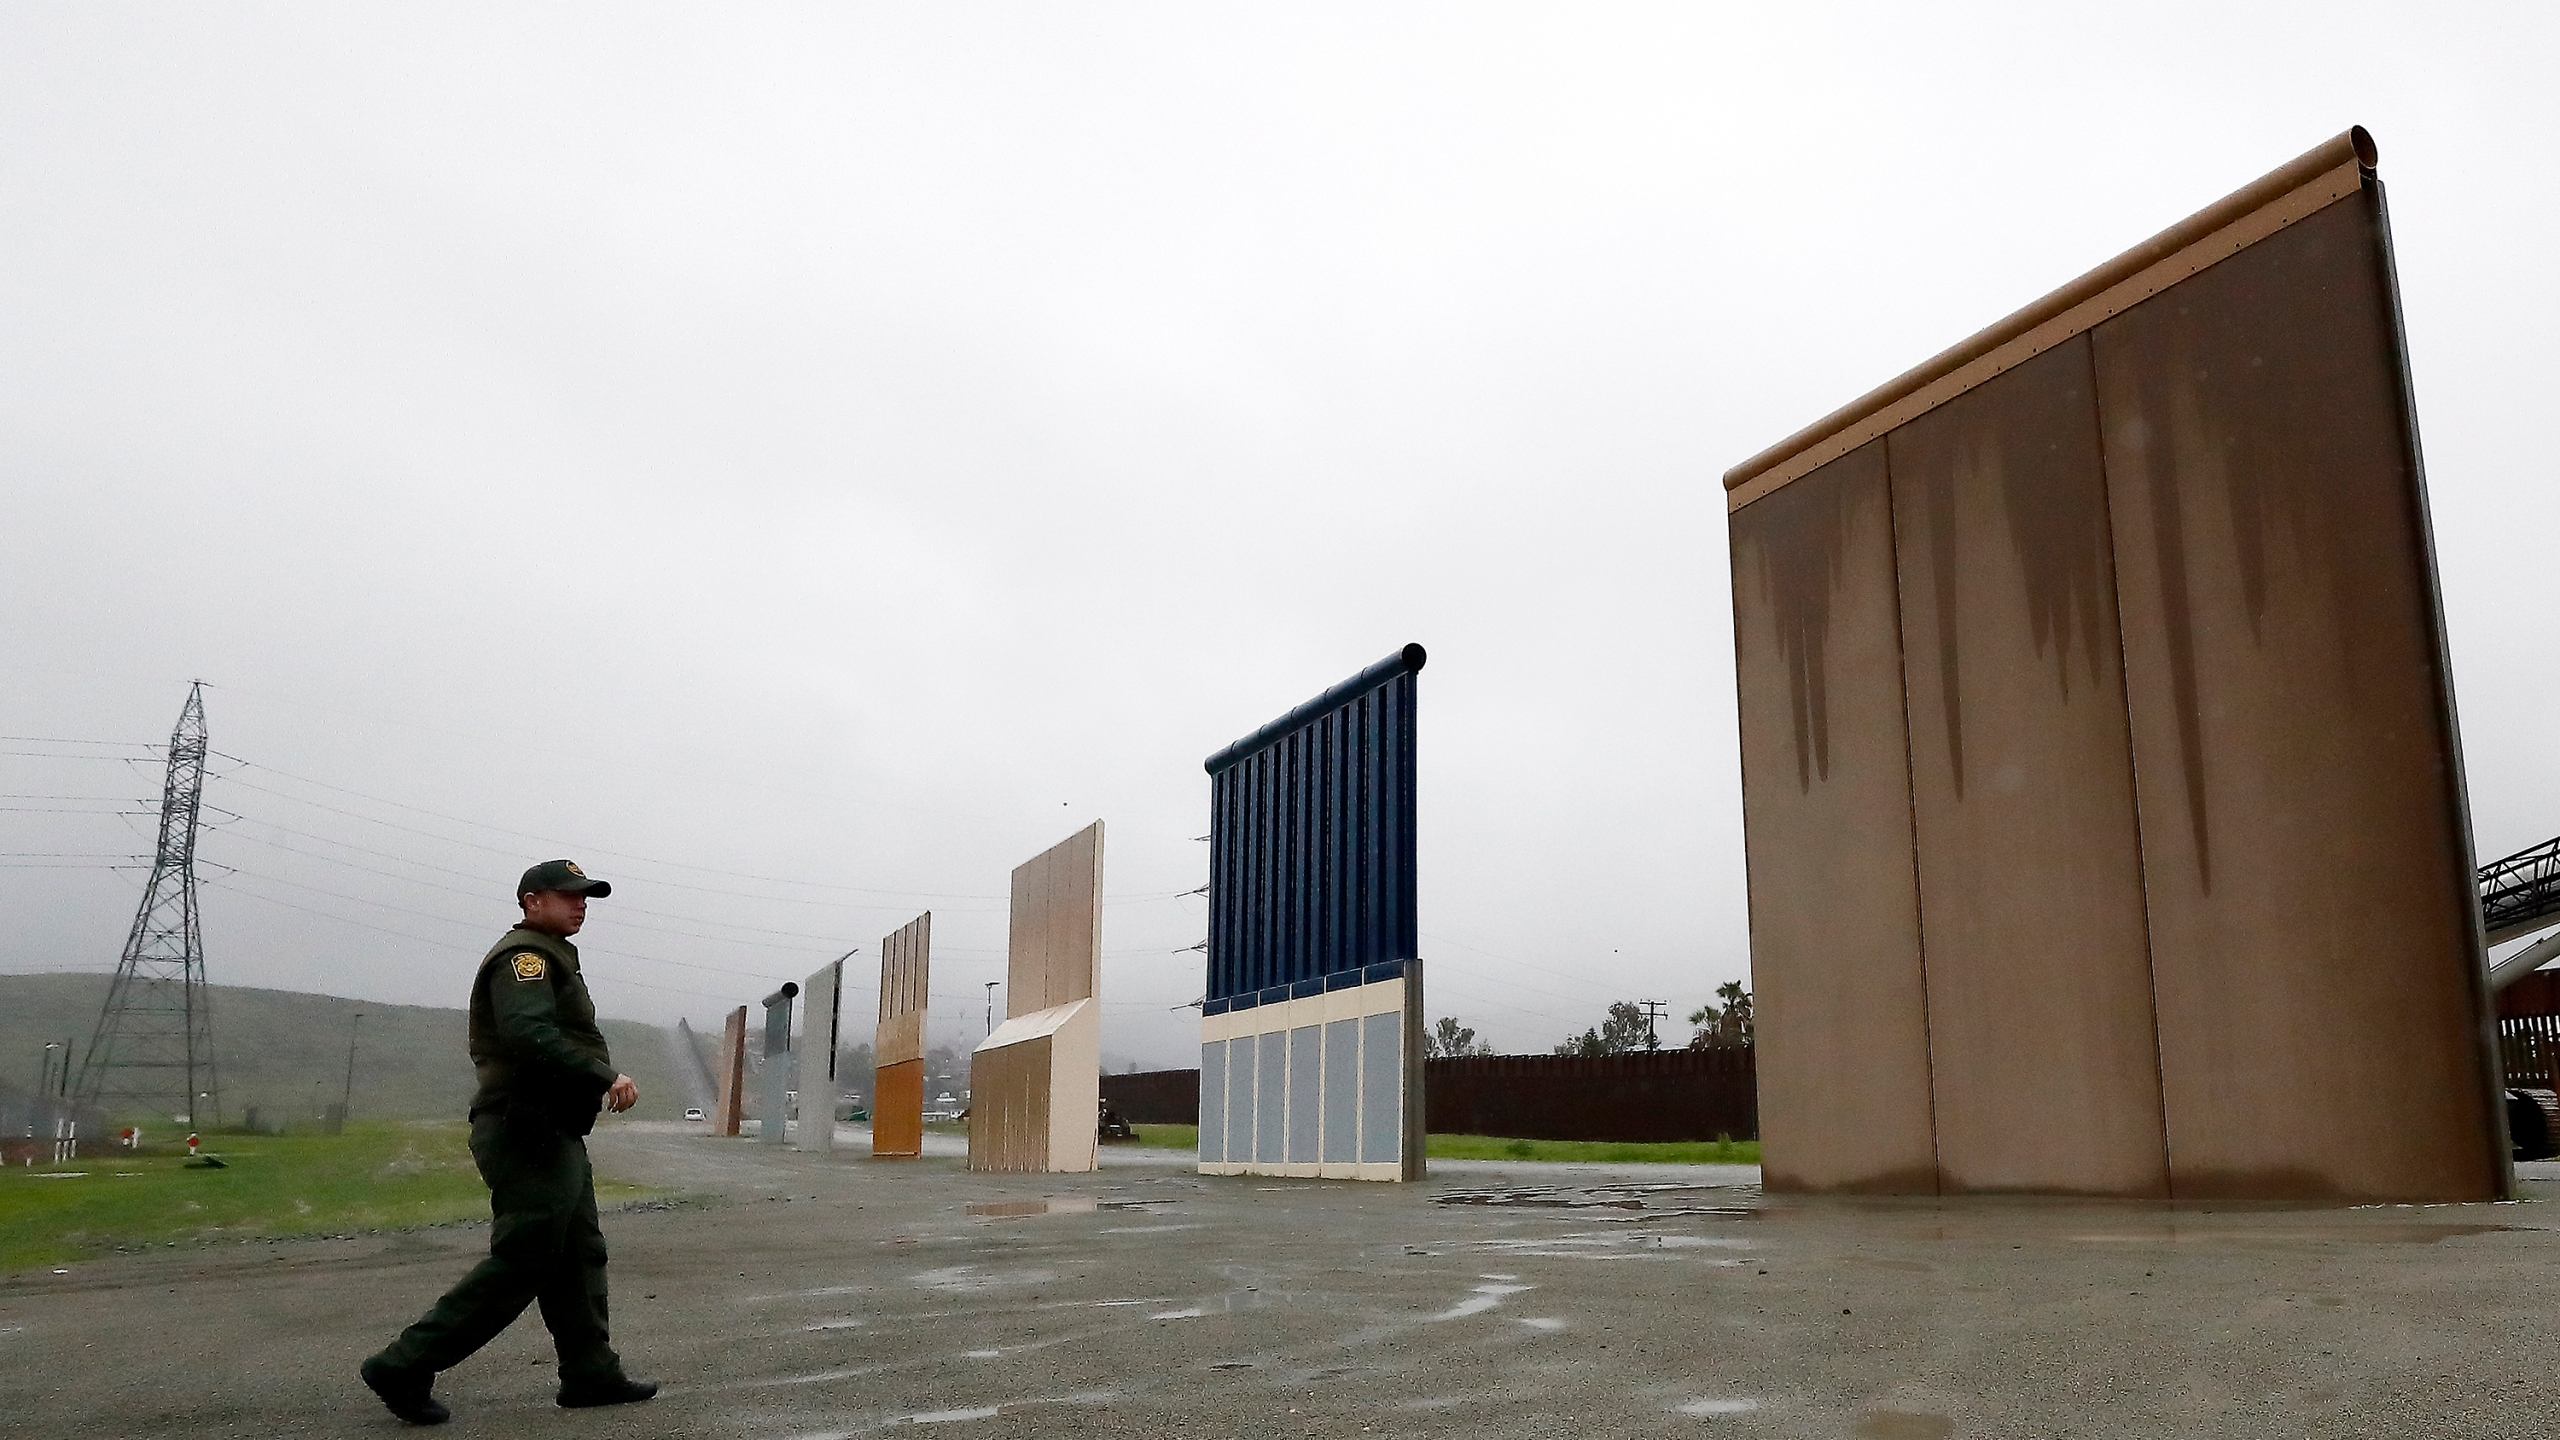 In this Feb. 5, 2019 file photo, U.S. Border Patrol agent Vincent Pirro walks towards prototypes for a border wall in San Diego. The Biden administration says it will begin work to address flooding and soil erosion risks from unfinished walls on the U.S. border with Mexico. It also began providing answers on how it will use unspent money from shutting down one of President Donald Trump's signature domestic projects. The Defense Department says it will use unobligated money for military construction projects for its initial purpose. (AP Photo/Gregory Bull, File)